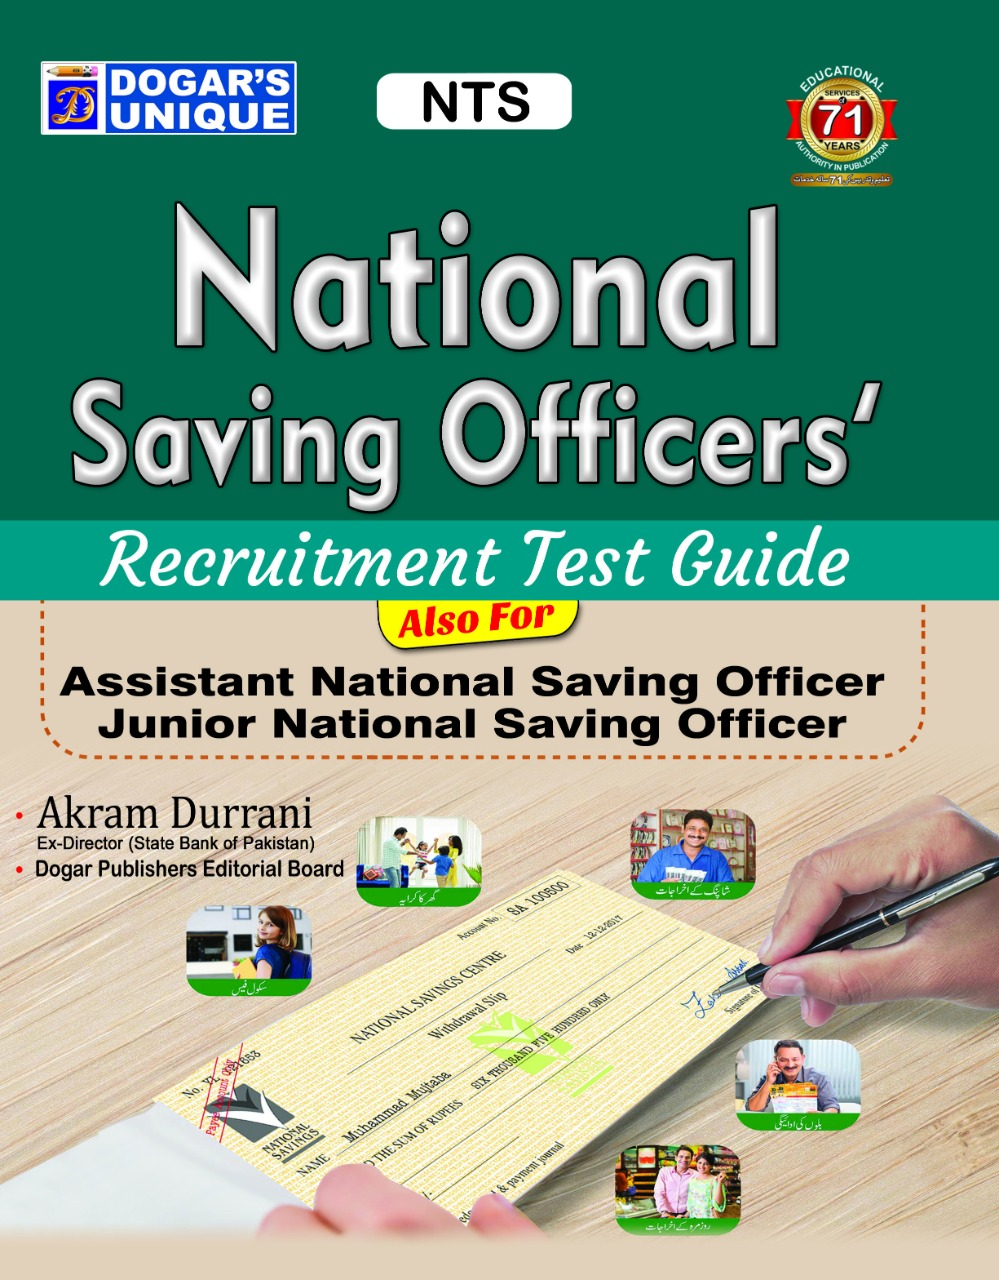 NTS National Saving officers